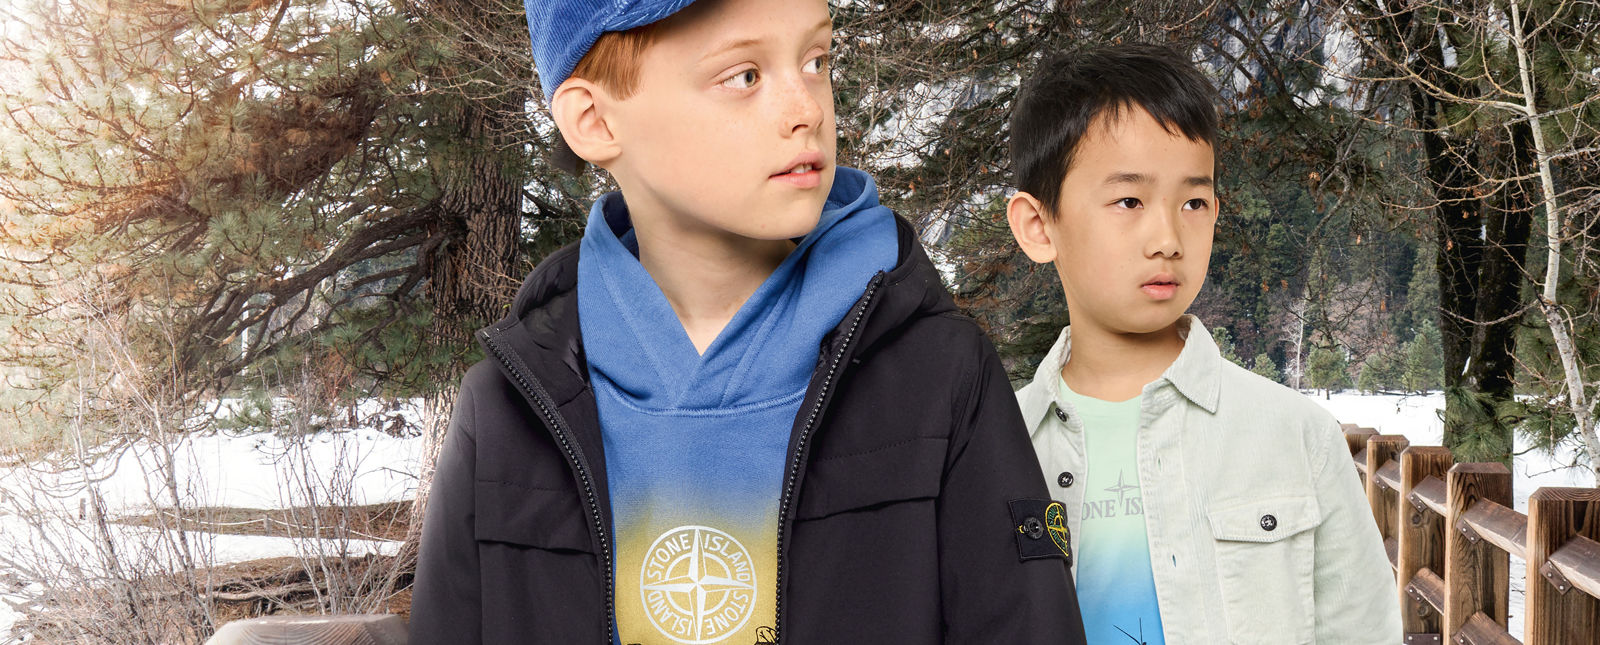 Two junior models, one wearing a hooded blue sweatshirt with a colorful print and the Stone Island compass logo, a blue cap and a dark colored jacket with zipper fastening, the other one wearing a light green t shirt with a colorful print on the front and